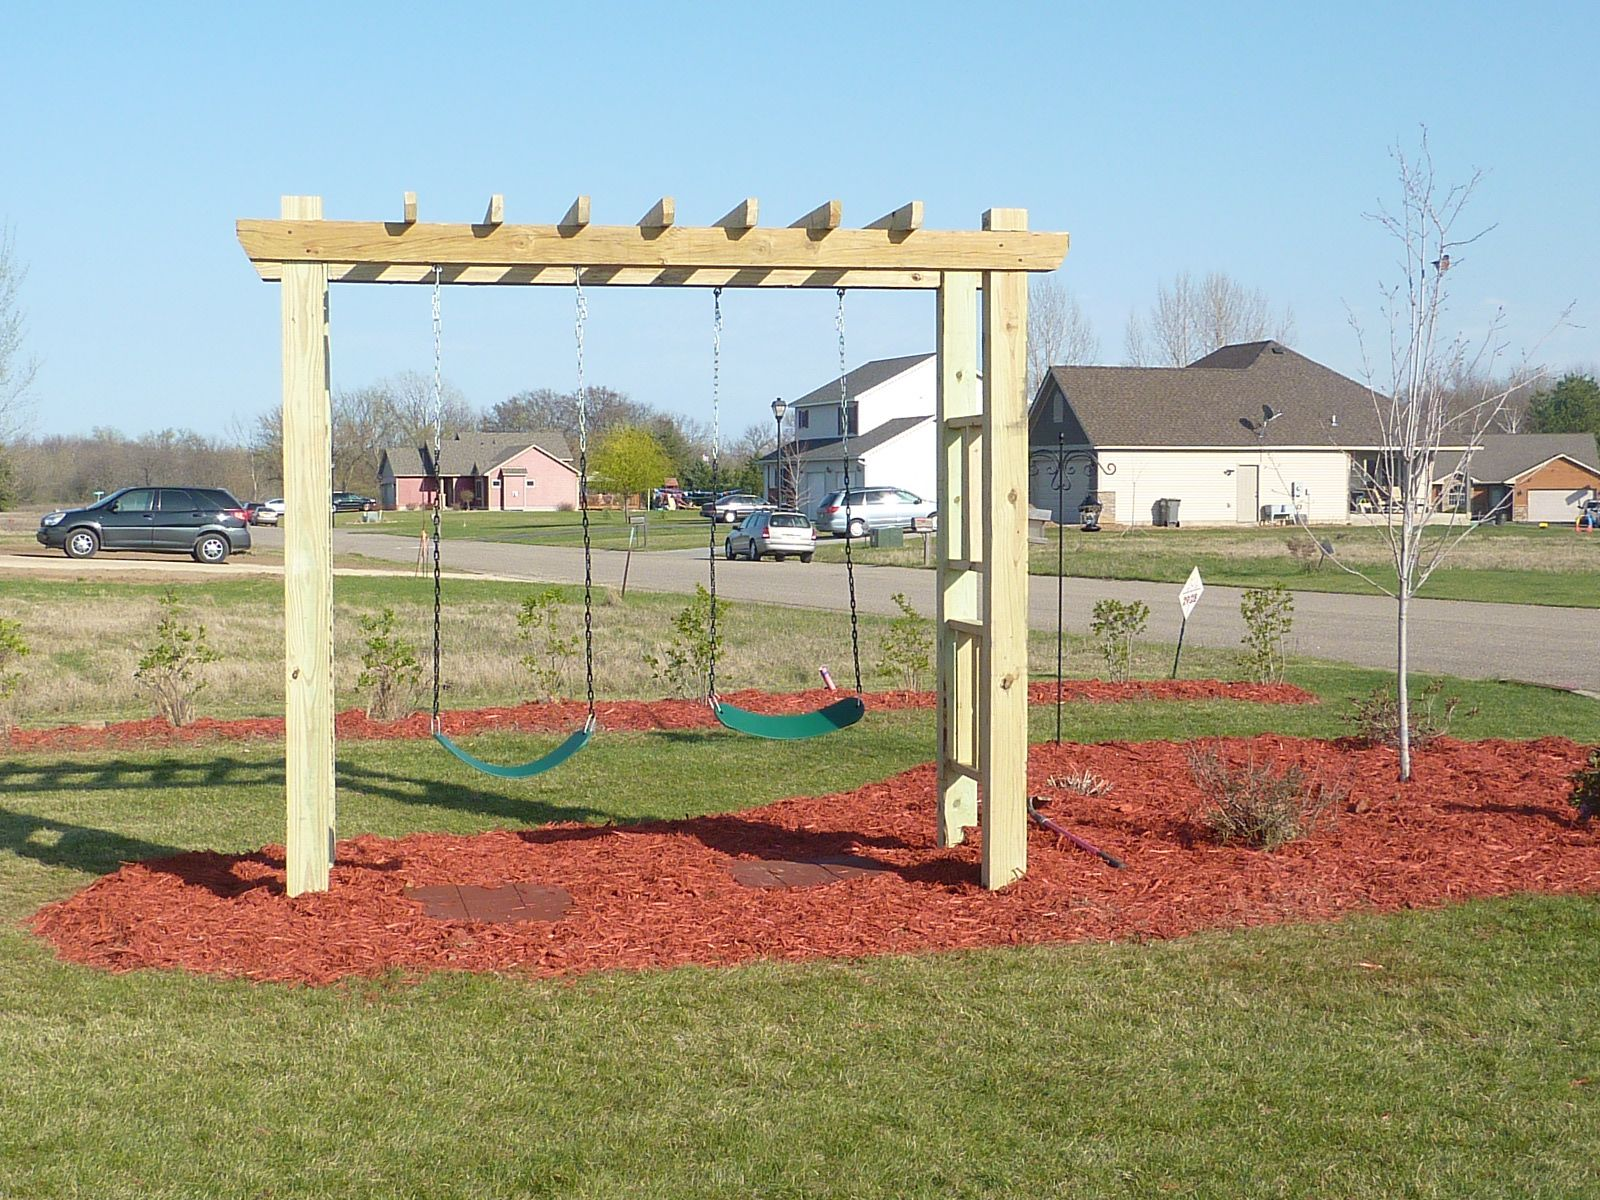 Scott s Idea for the children s Swing set To build